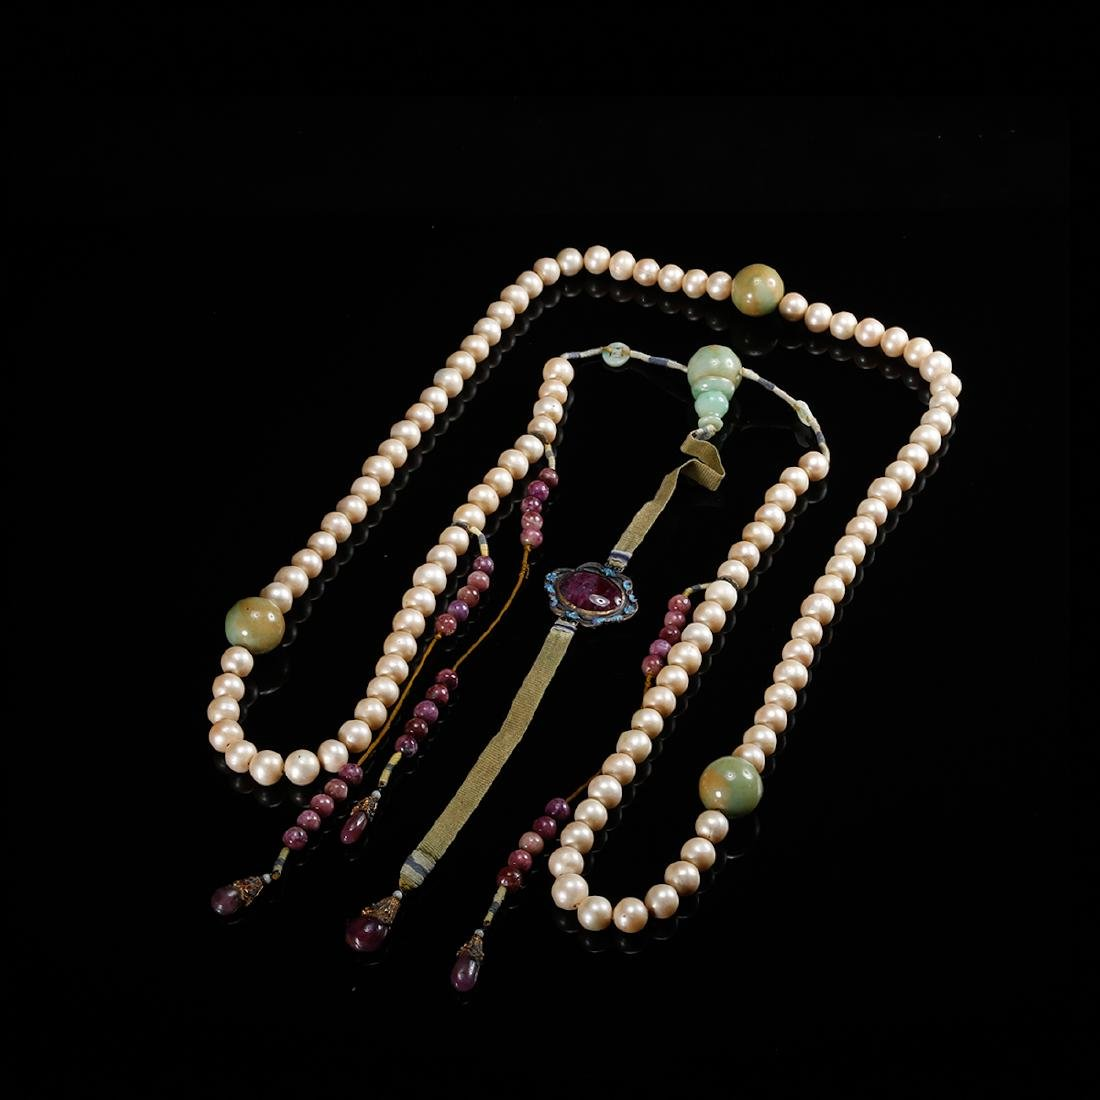 CHINESE PEARL COURT BEADS NECKLACE, QING - 2